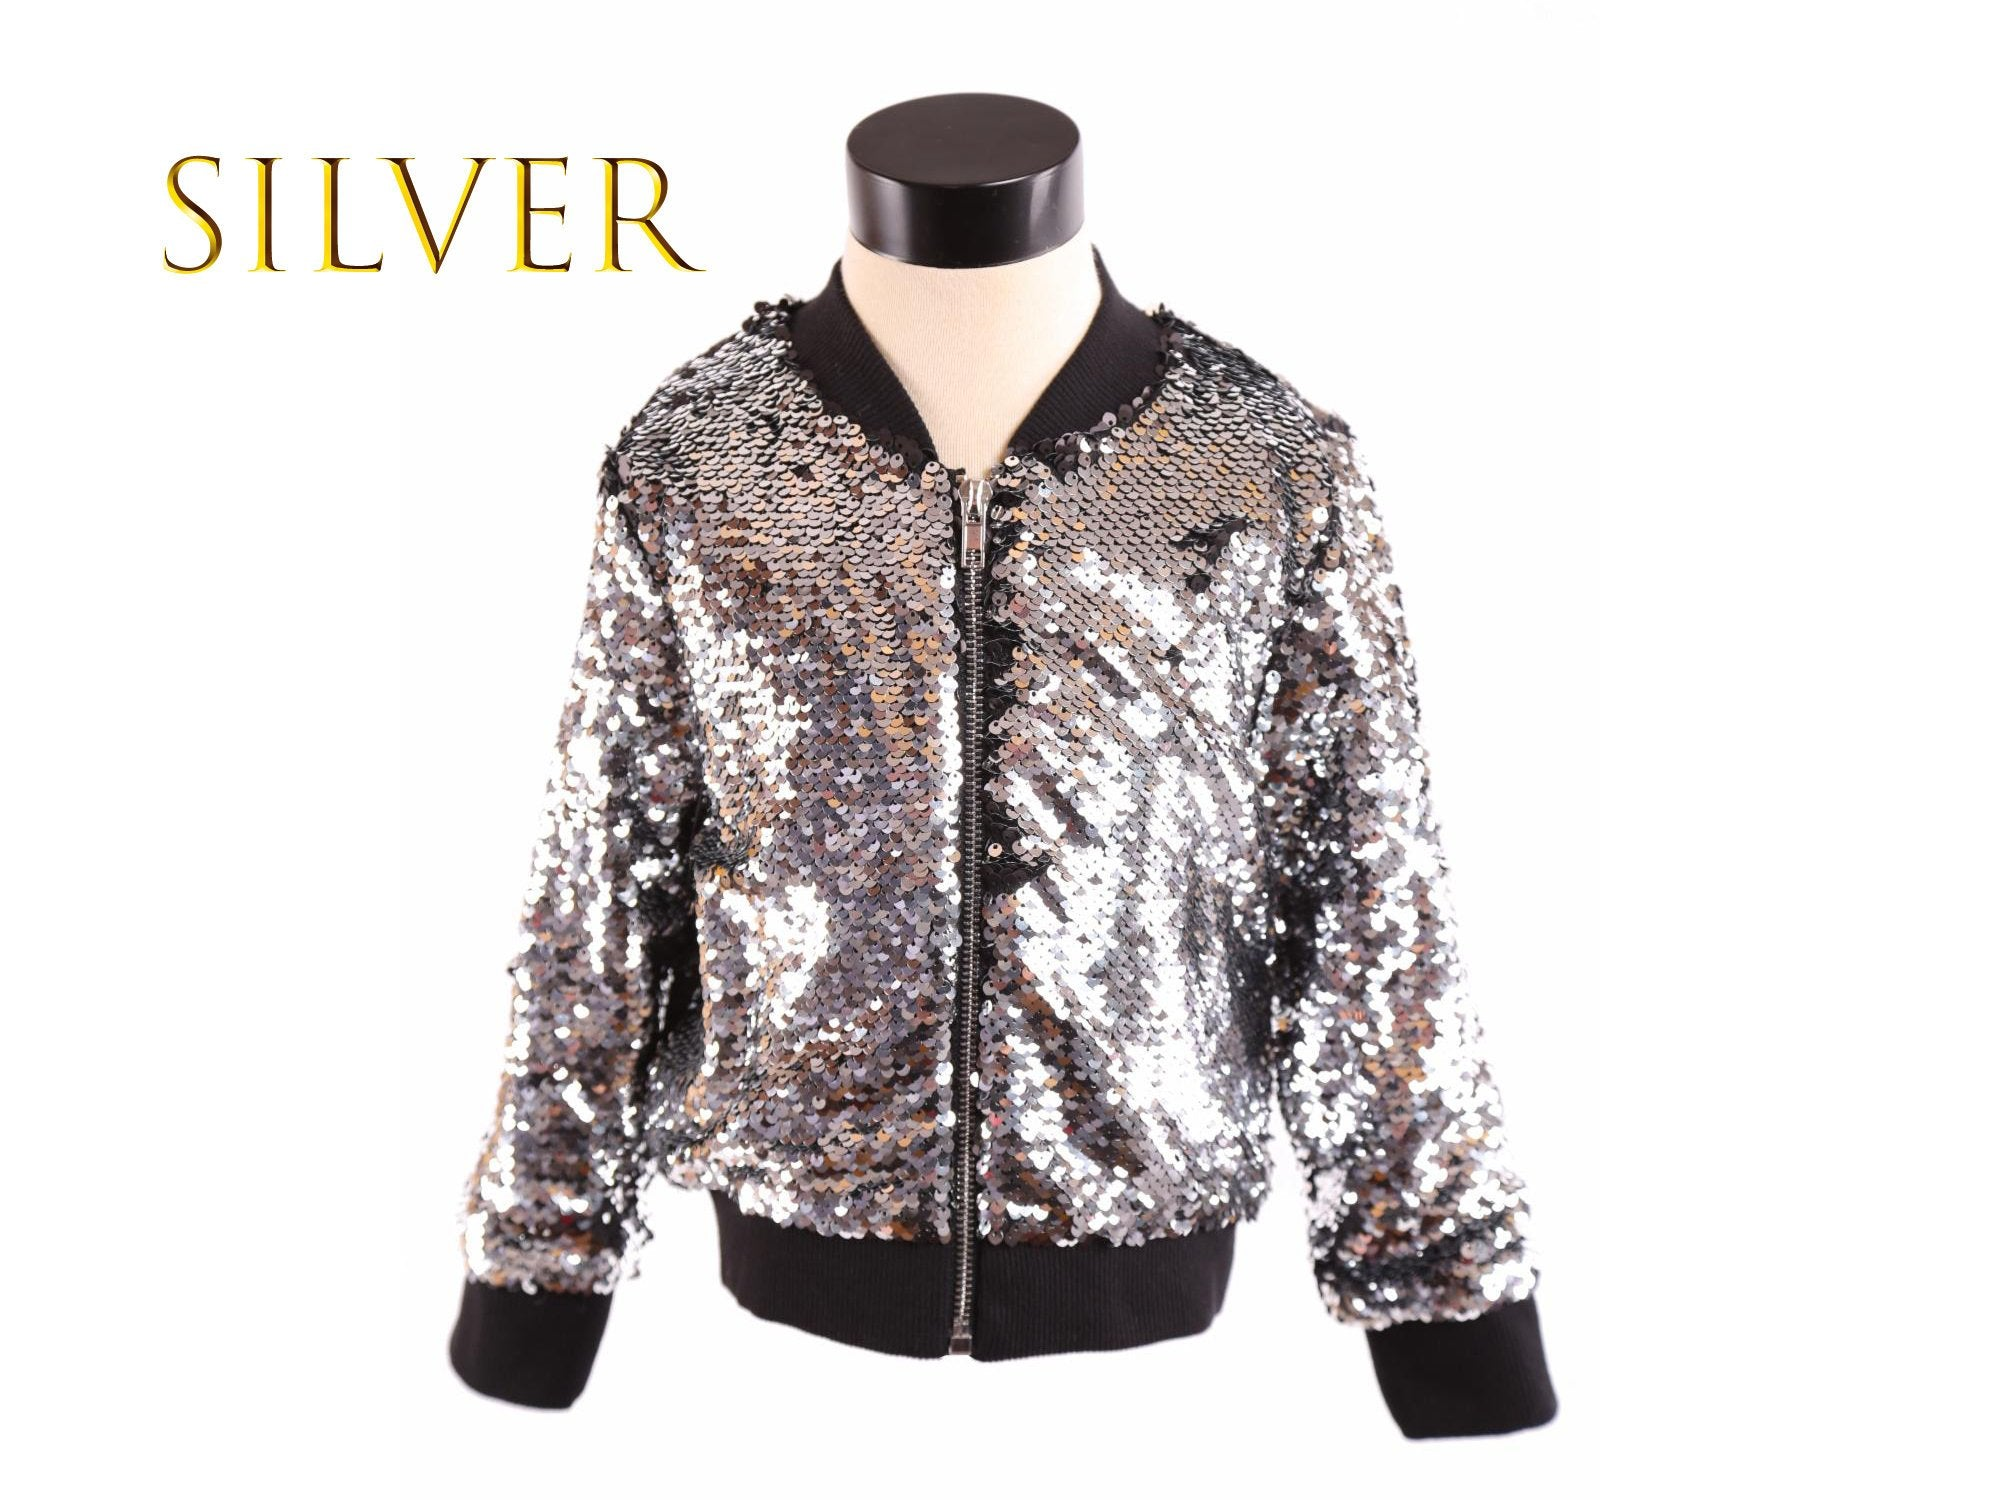 b362f8f9 Girl Luxury Ultra Sparkle Sequined Zip-Up Bomber Jacket, Black, Peacock,  Silver